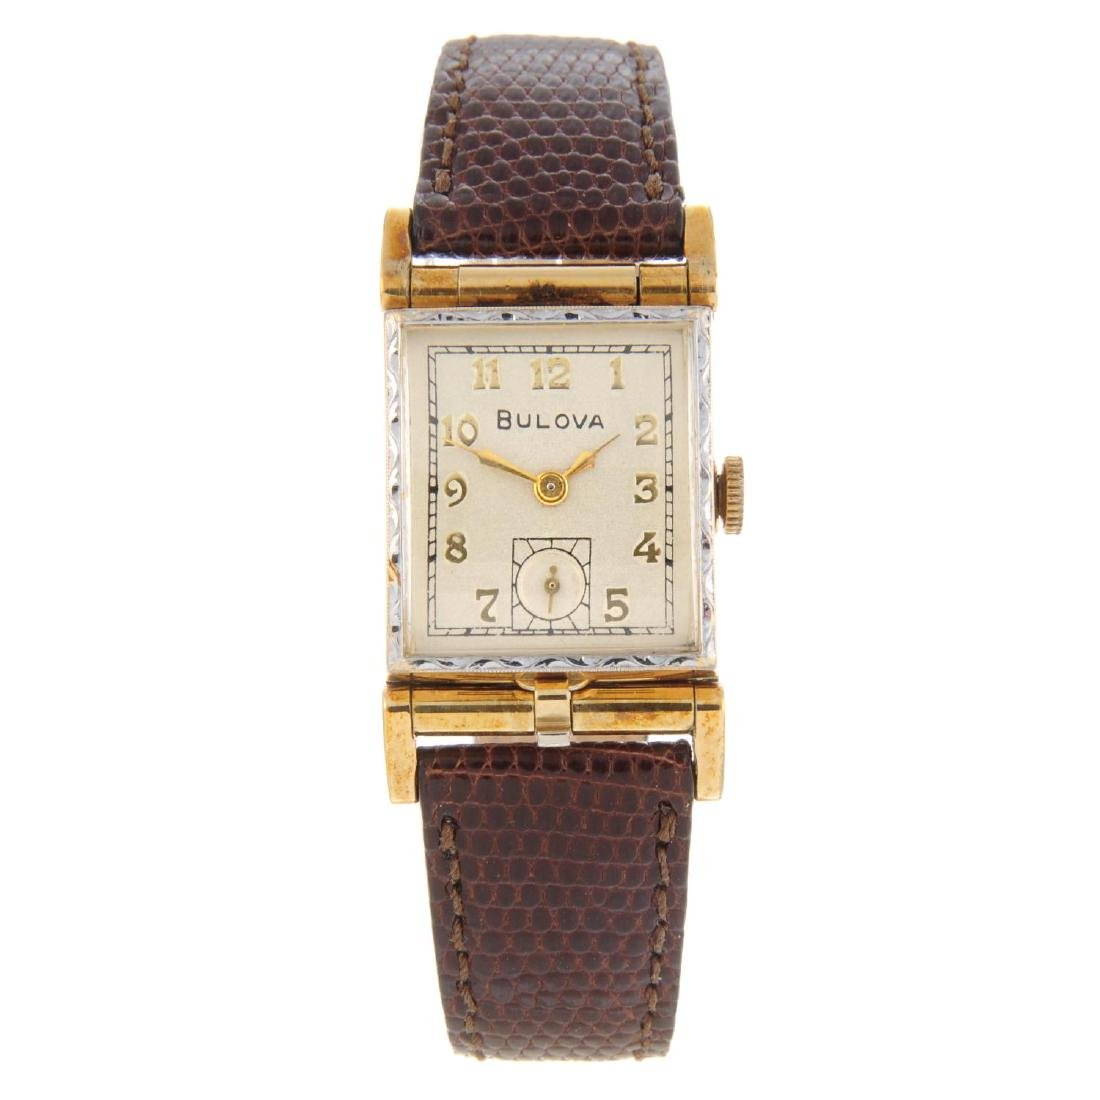 BULOVA - a mid-size wrist watch. Rolled gold case.